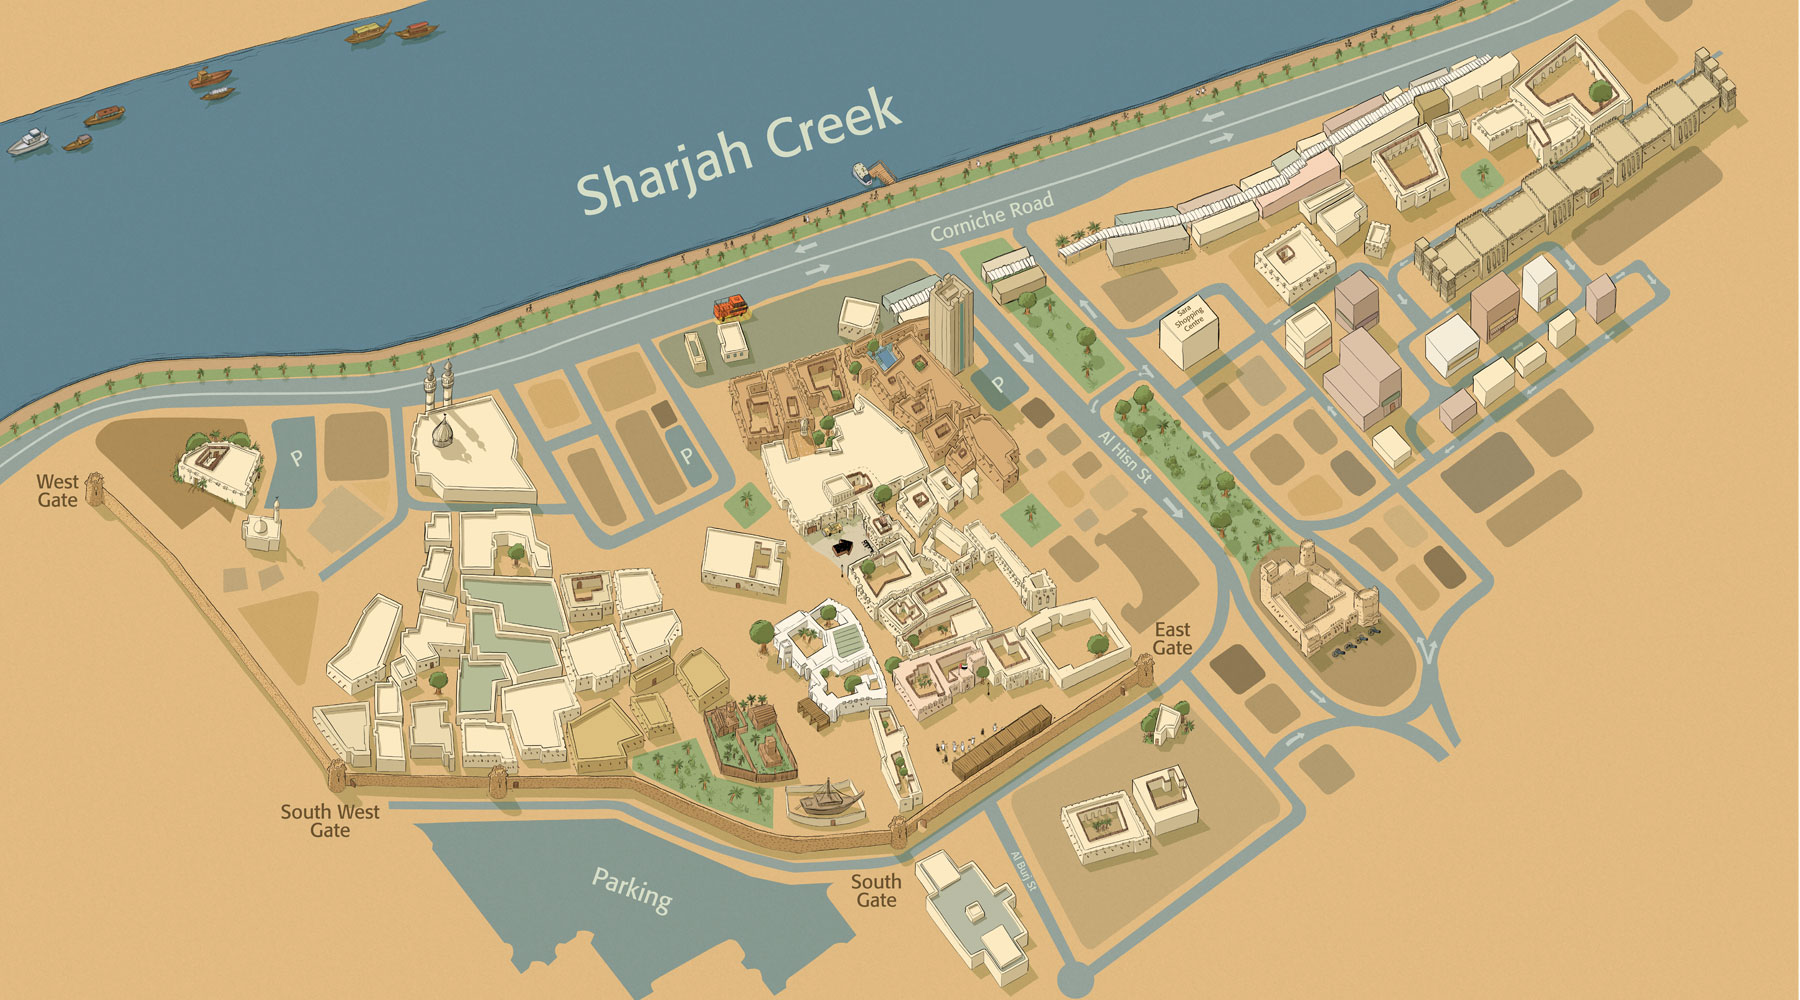 Heart of Sharjah Interactive Map